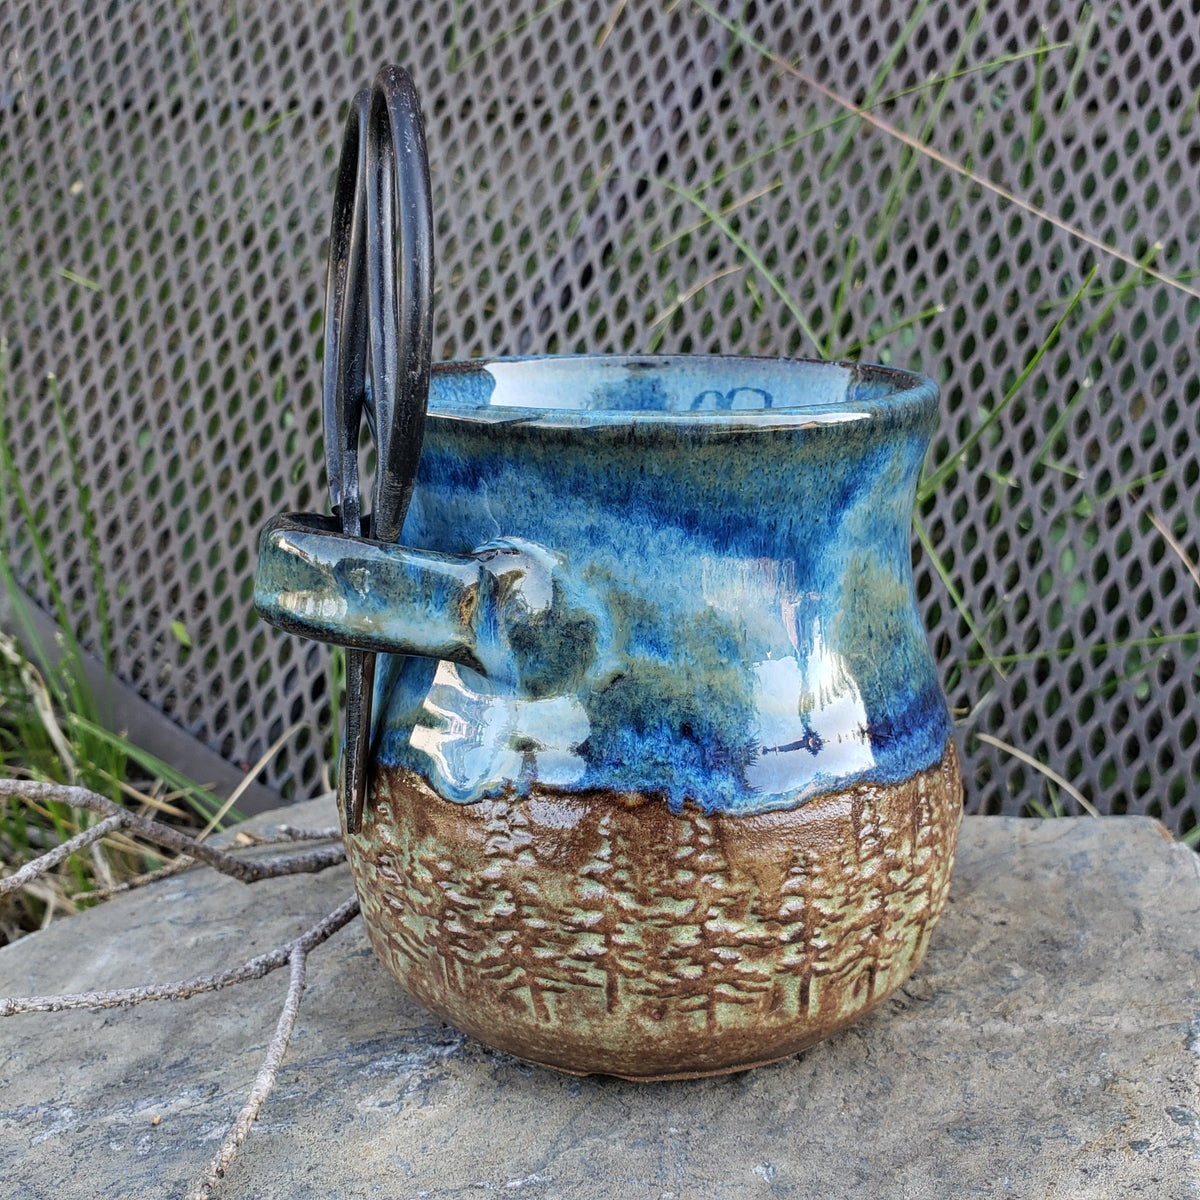 Image of Small Crafter's Catch-all and steel bonsai snips: Nestled in the Forest under Bluebird Skies